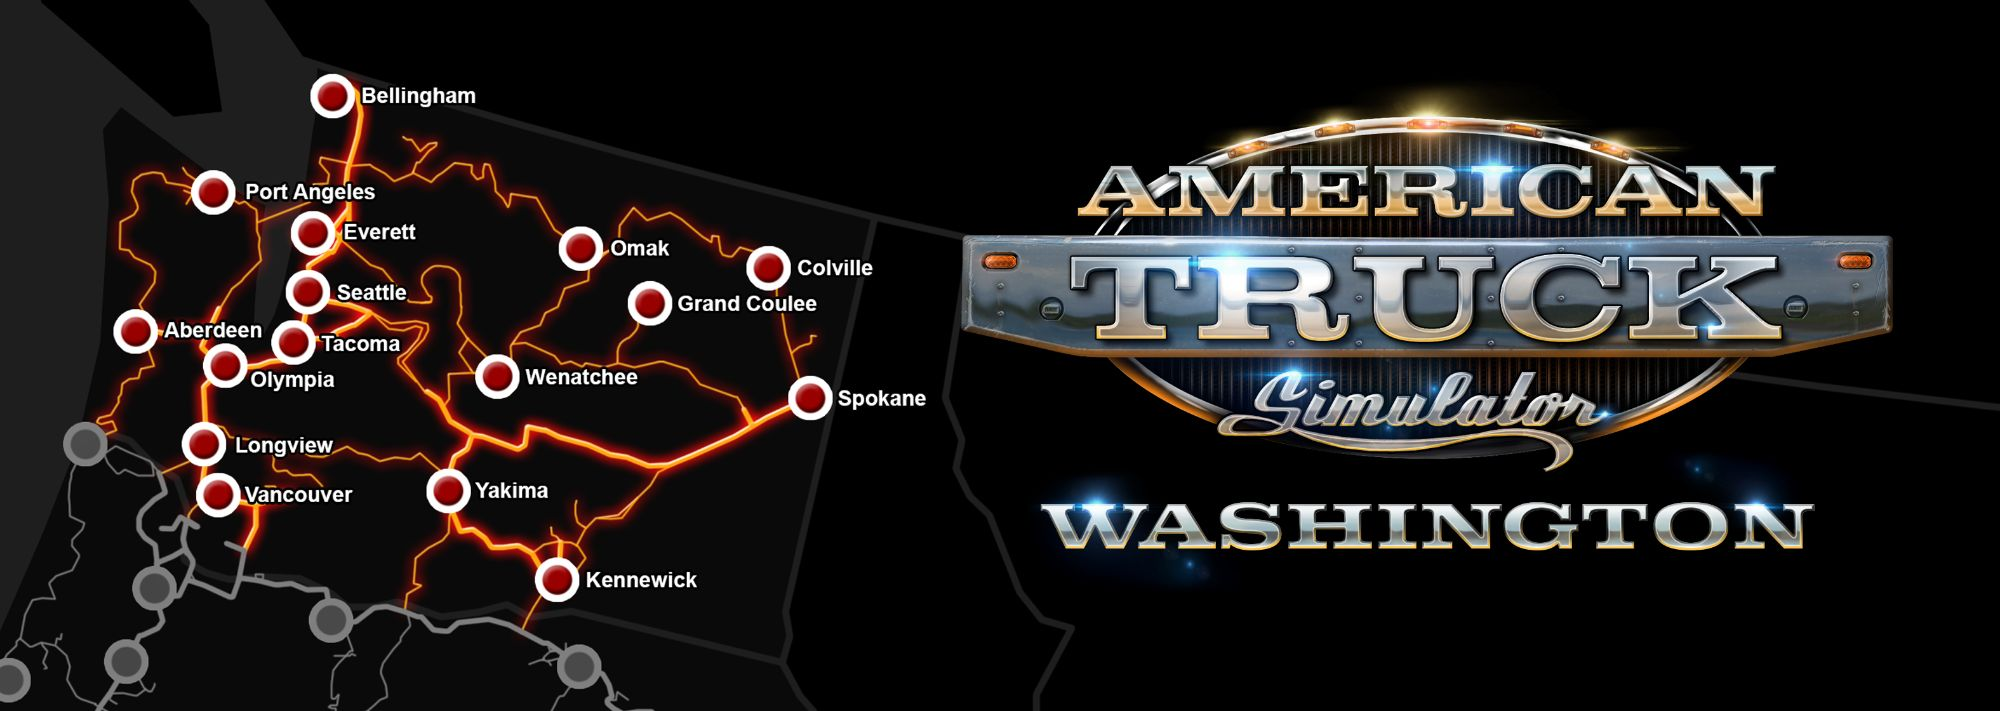 Image showing the map for American Truck Simulator Washington